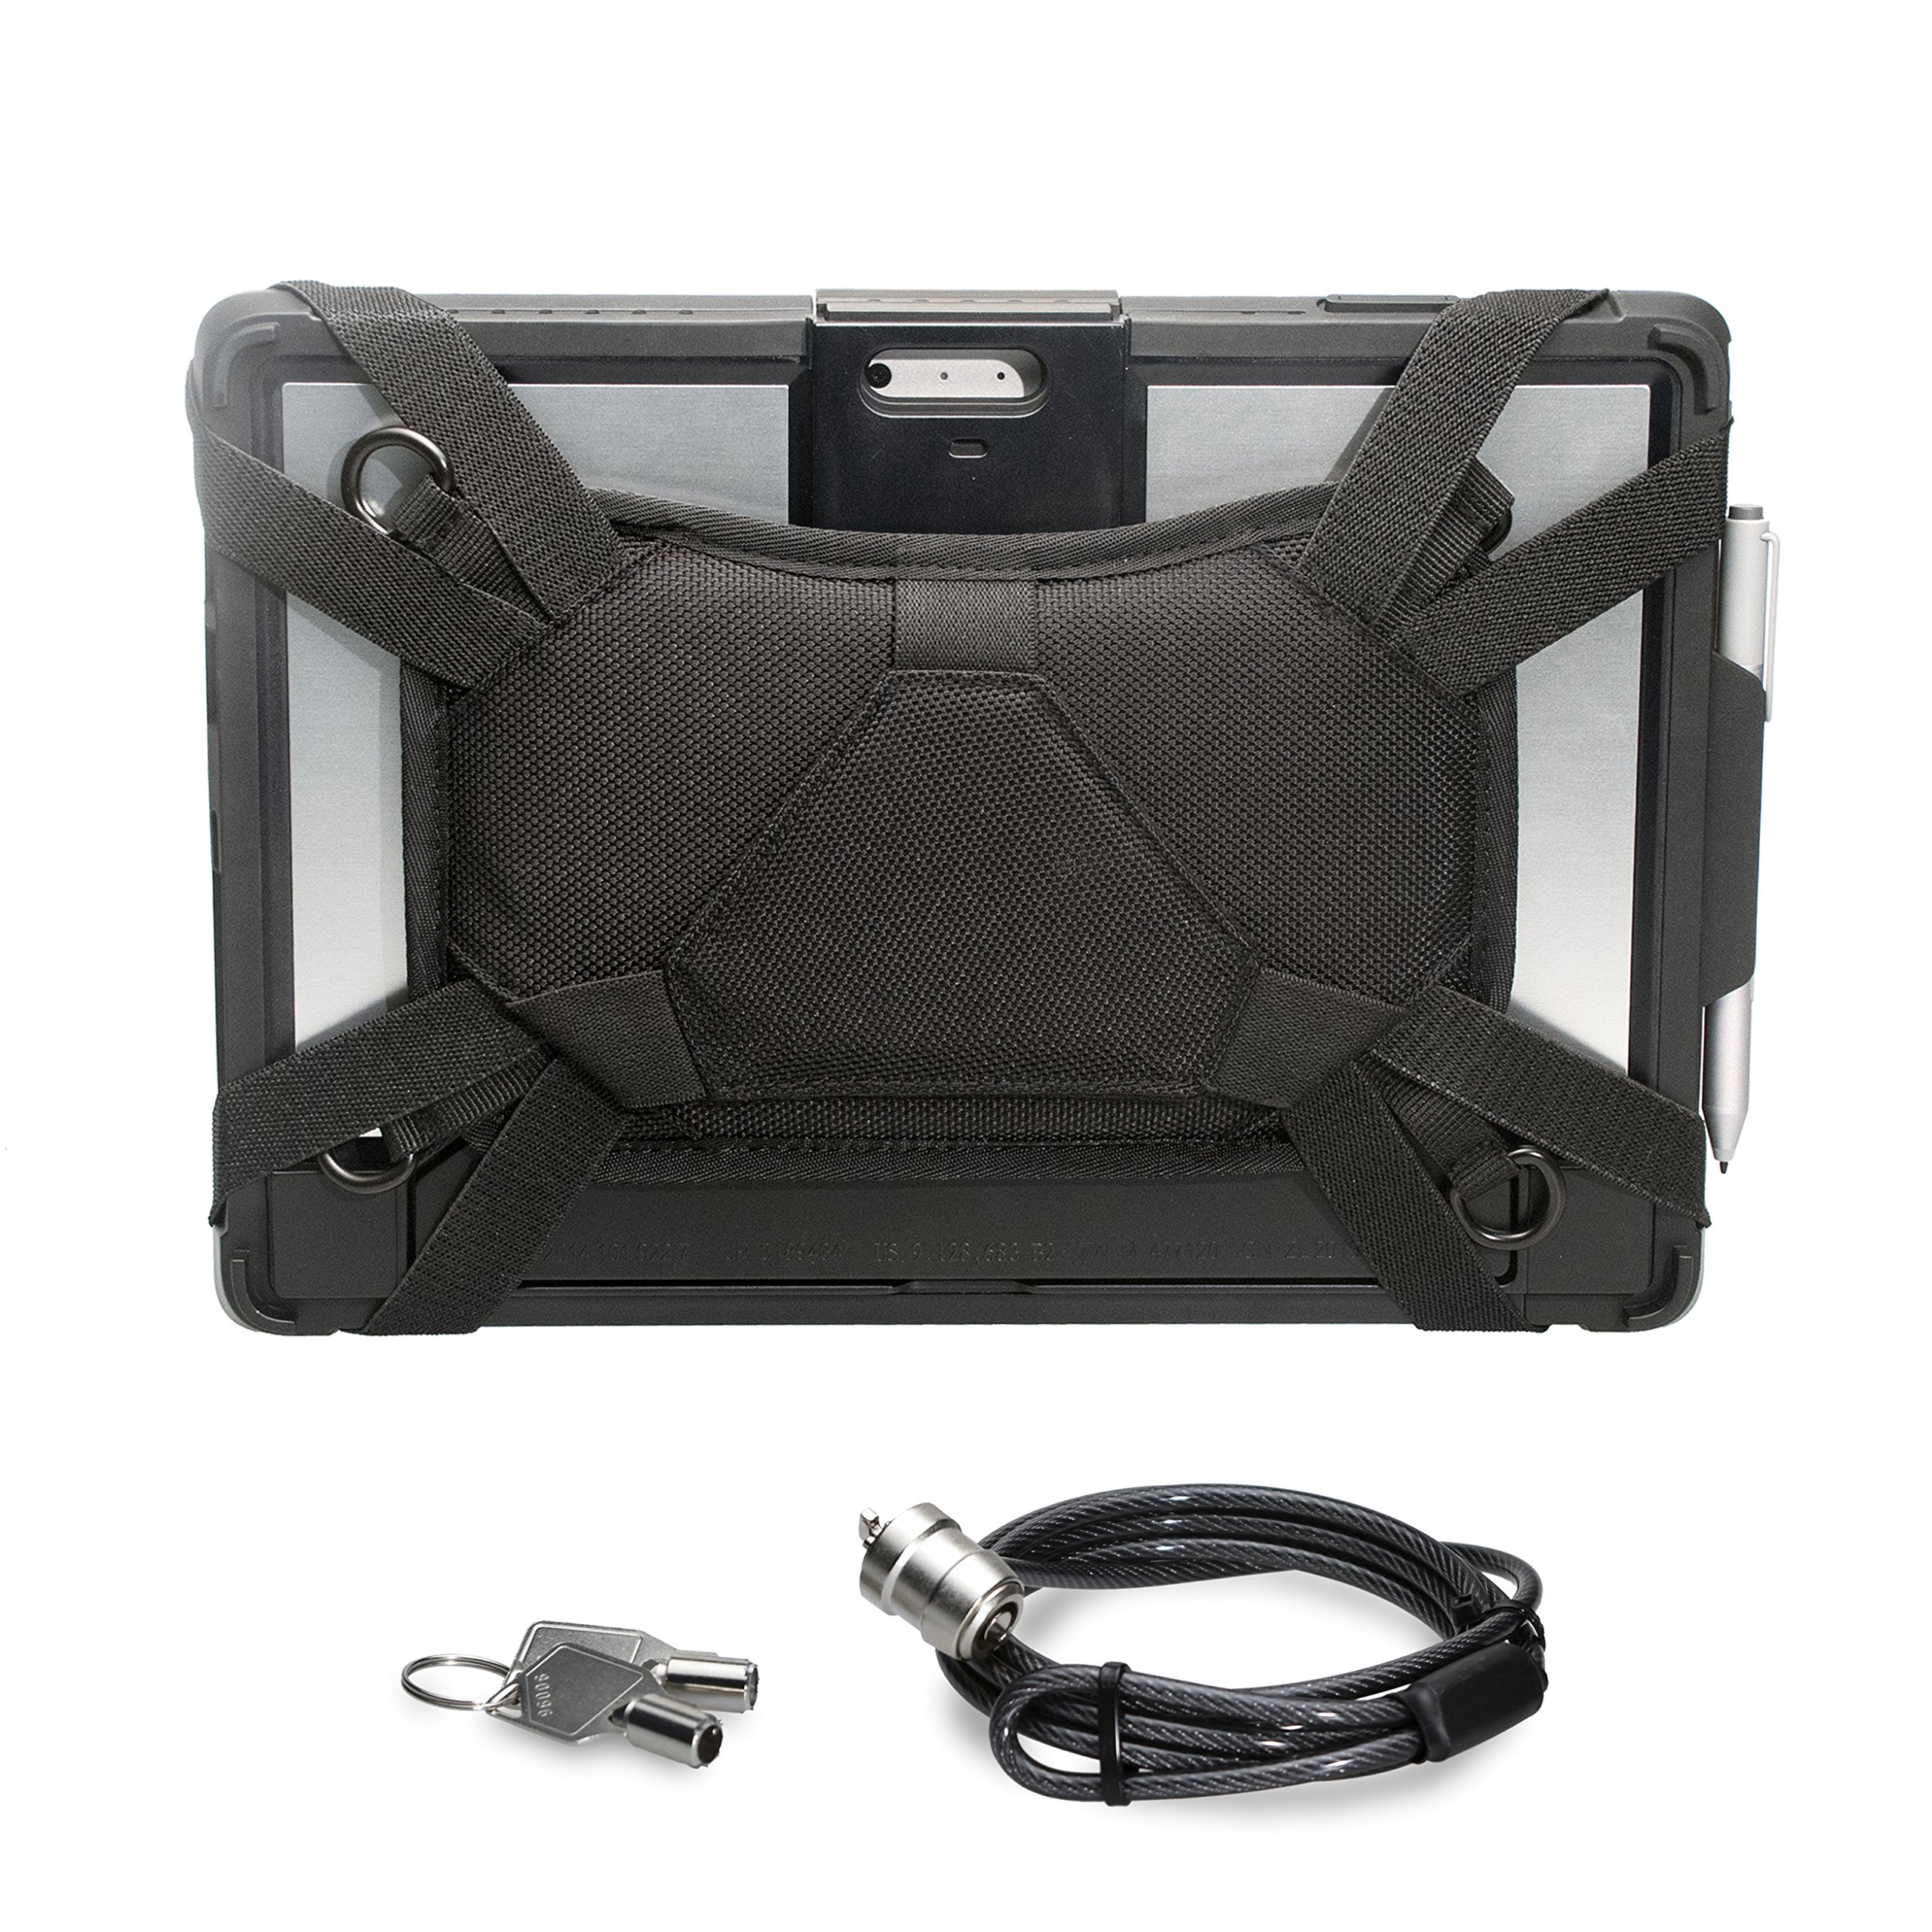 CTA Digital Security Carrying Case with Kickstand and Anti-Theft Cable for Surface Pro 4/Surface Pro 5 (PAD-SCCKS)